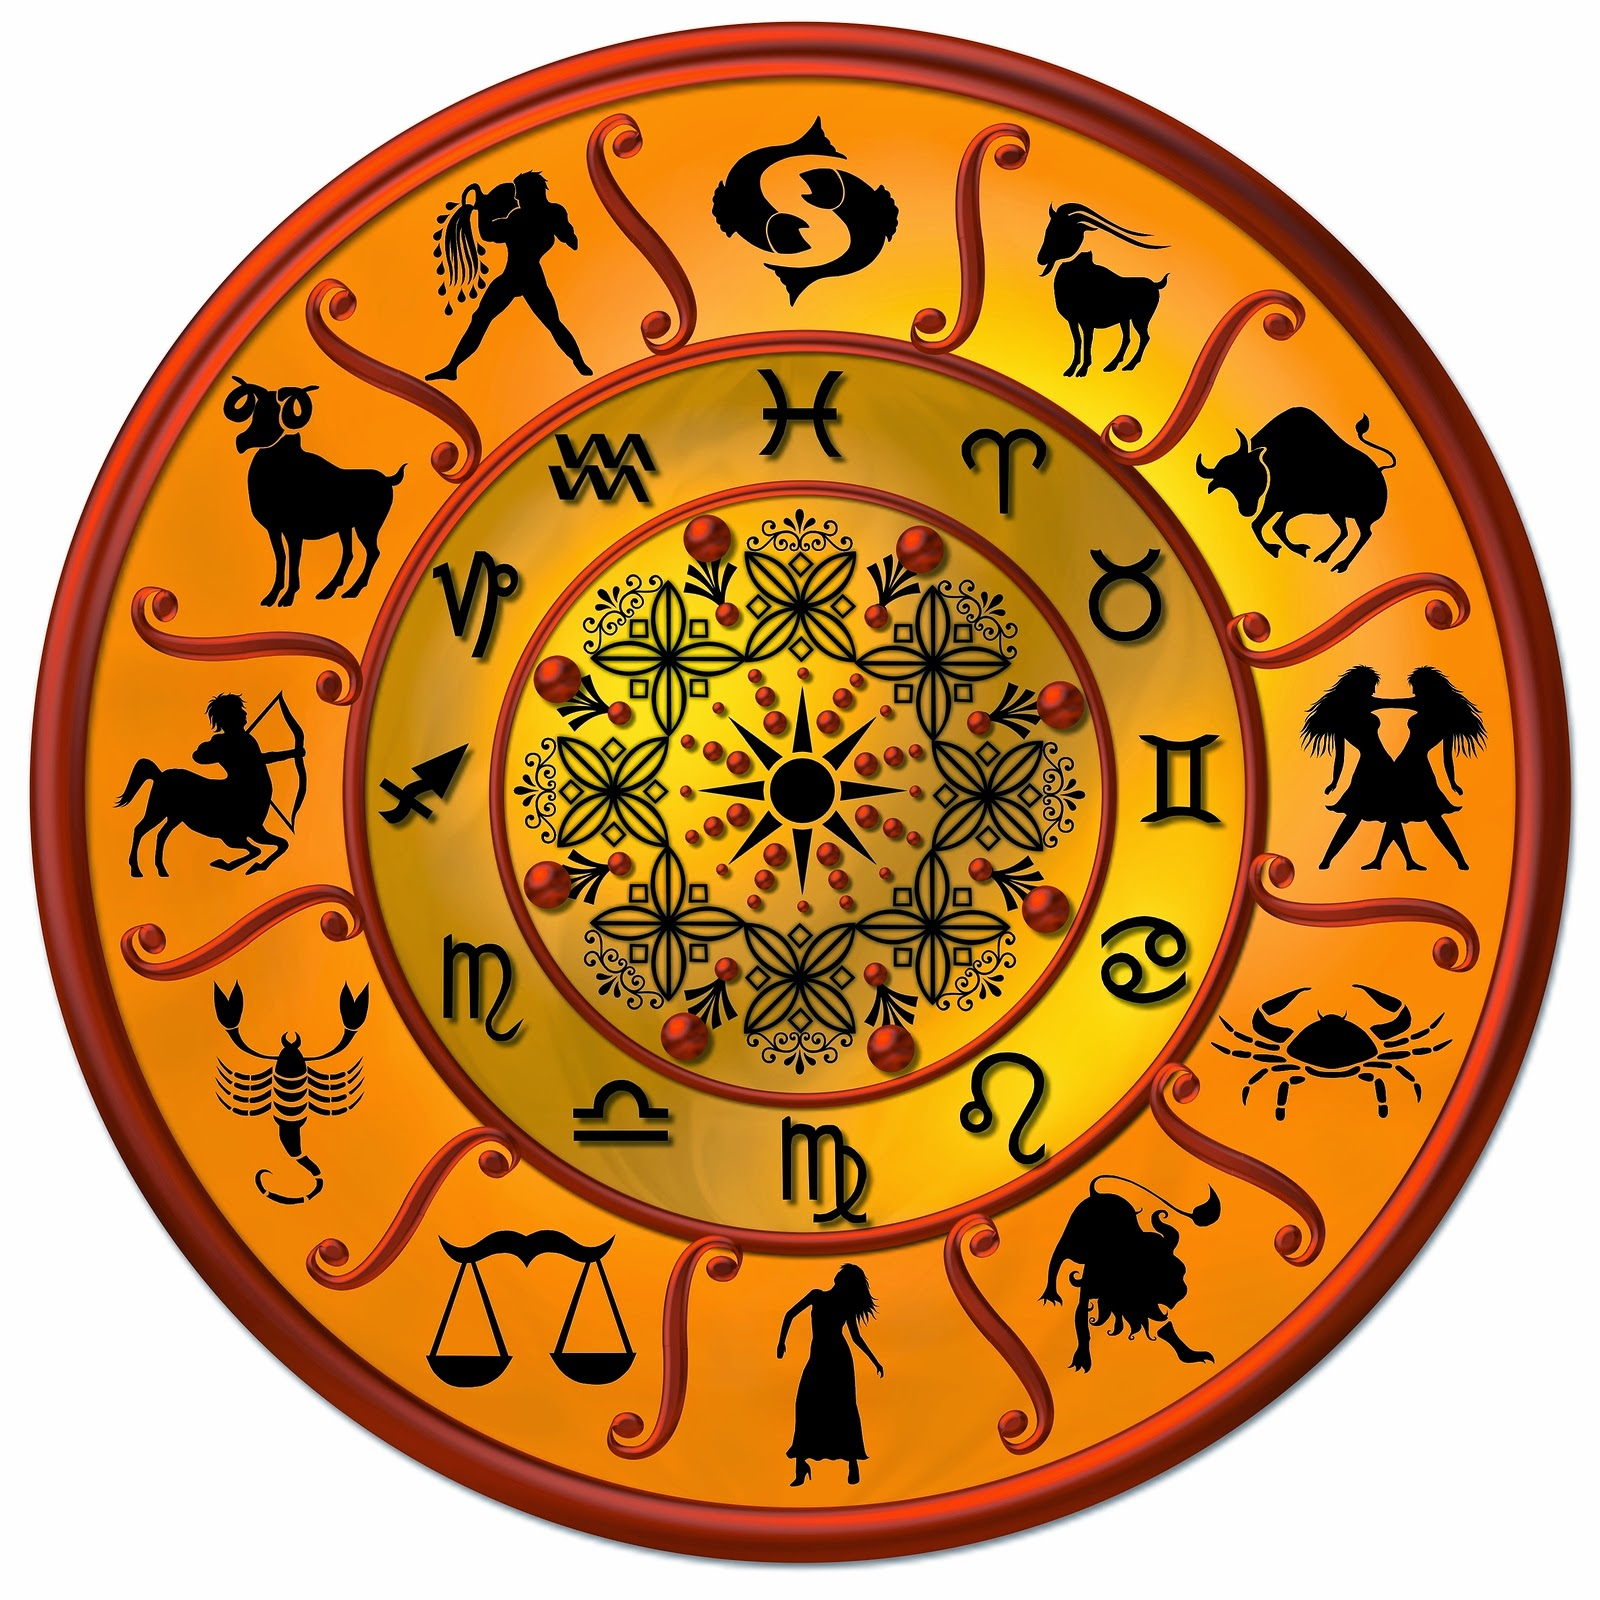 Gossip-Lanka-Sinhala-News-Horoscope-predictions-for-February-2015-www.gossipsinhalanews.com